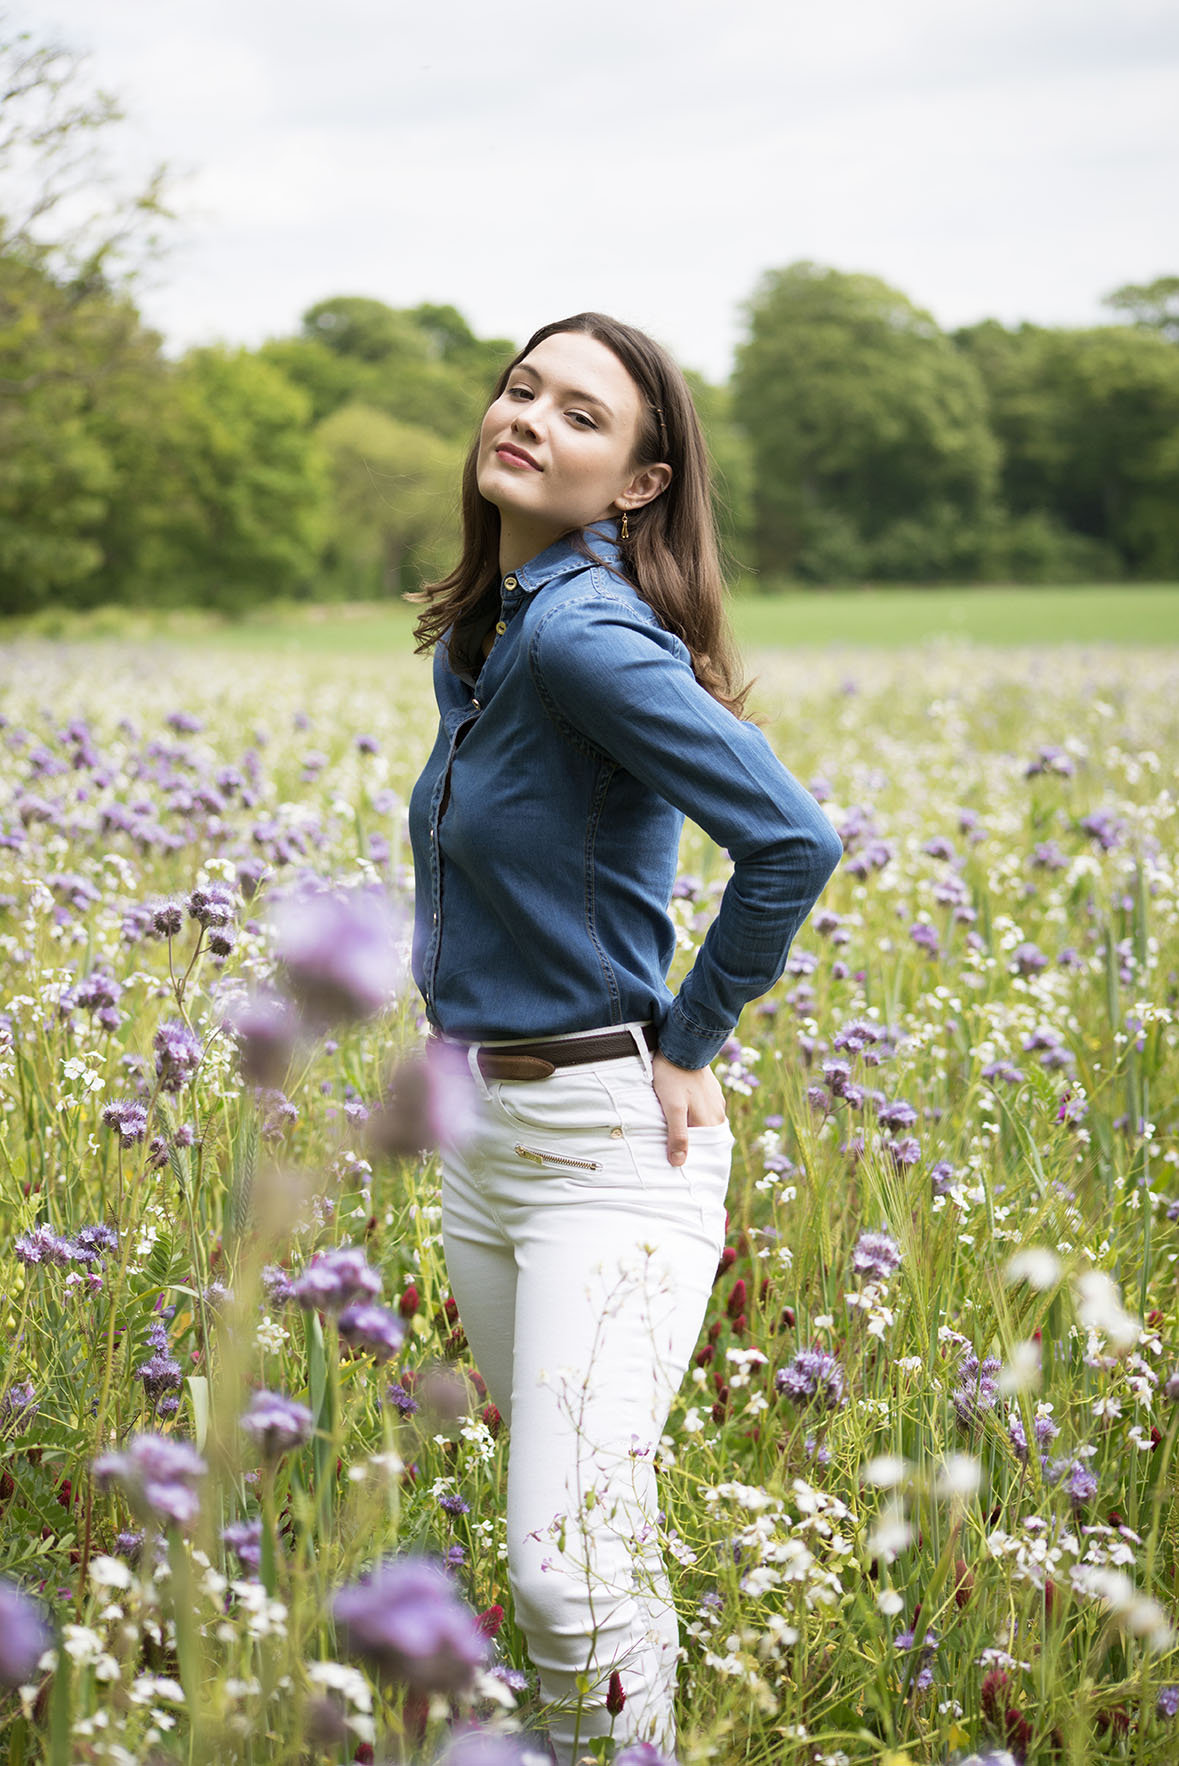 Spring Summer Fashion Photoshoot for Harris Rae As Seen in Cotswold Living Magazine 2020 Modelled by Holly Errington by Grace Delnevo Cotswold Fashion Photographer